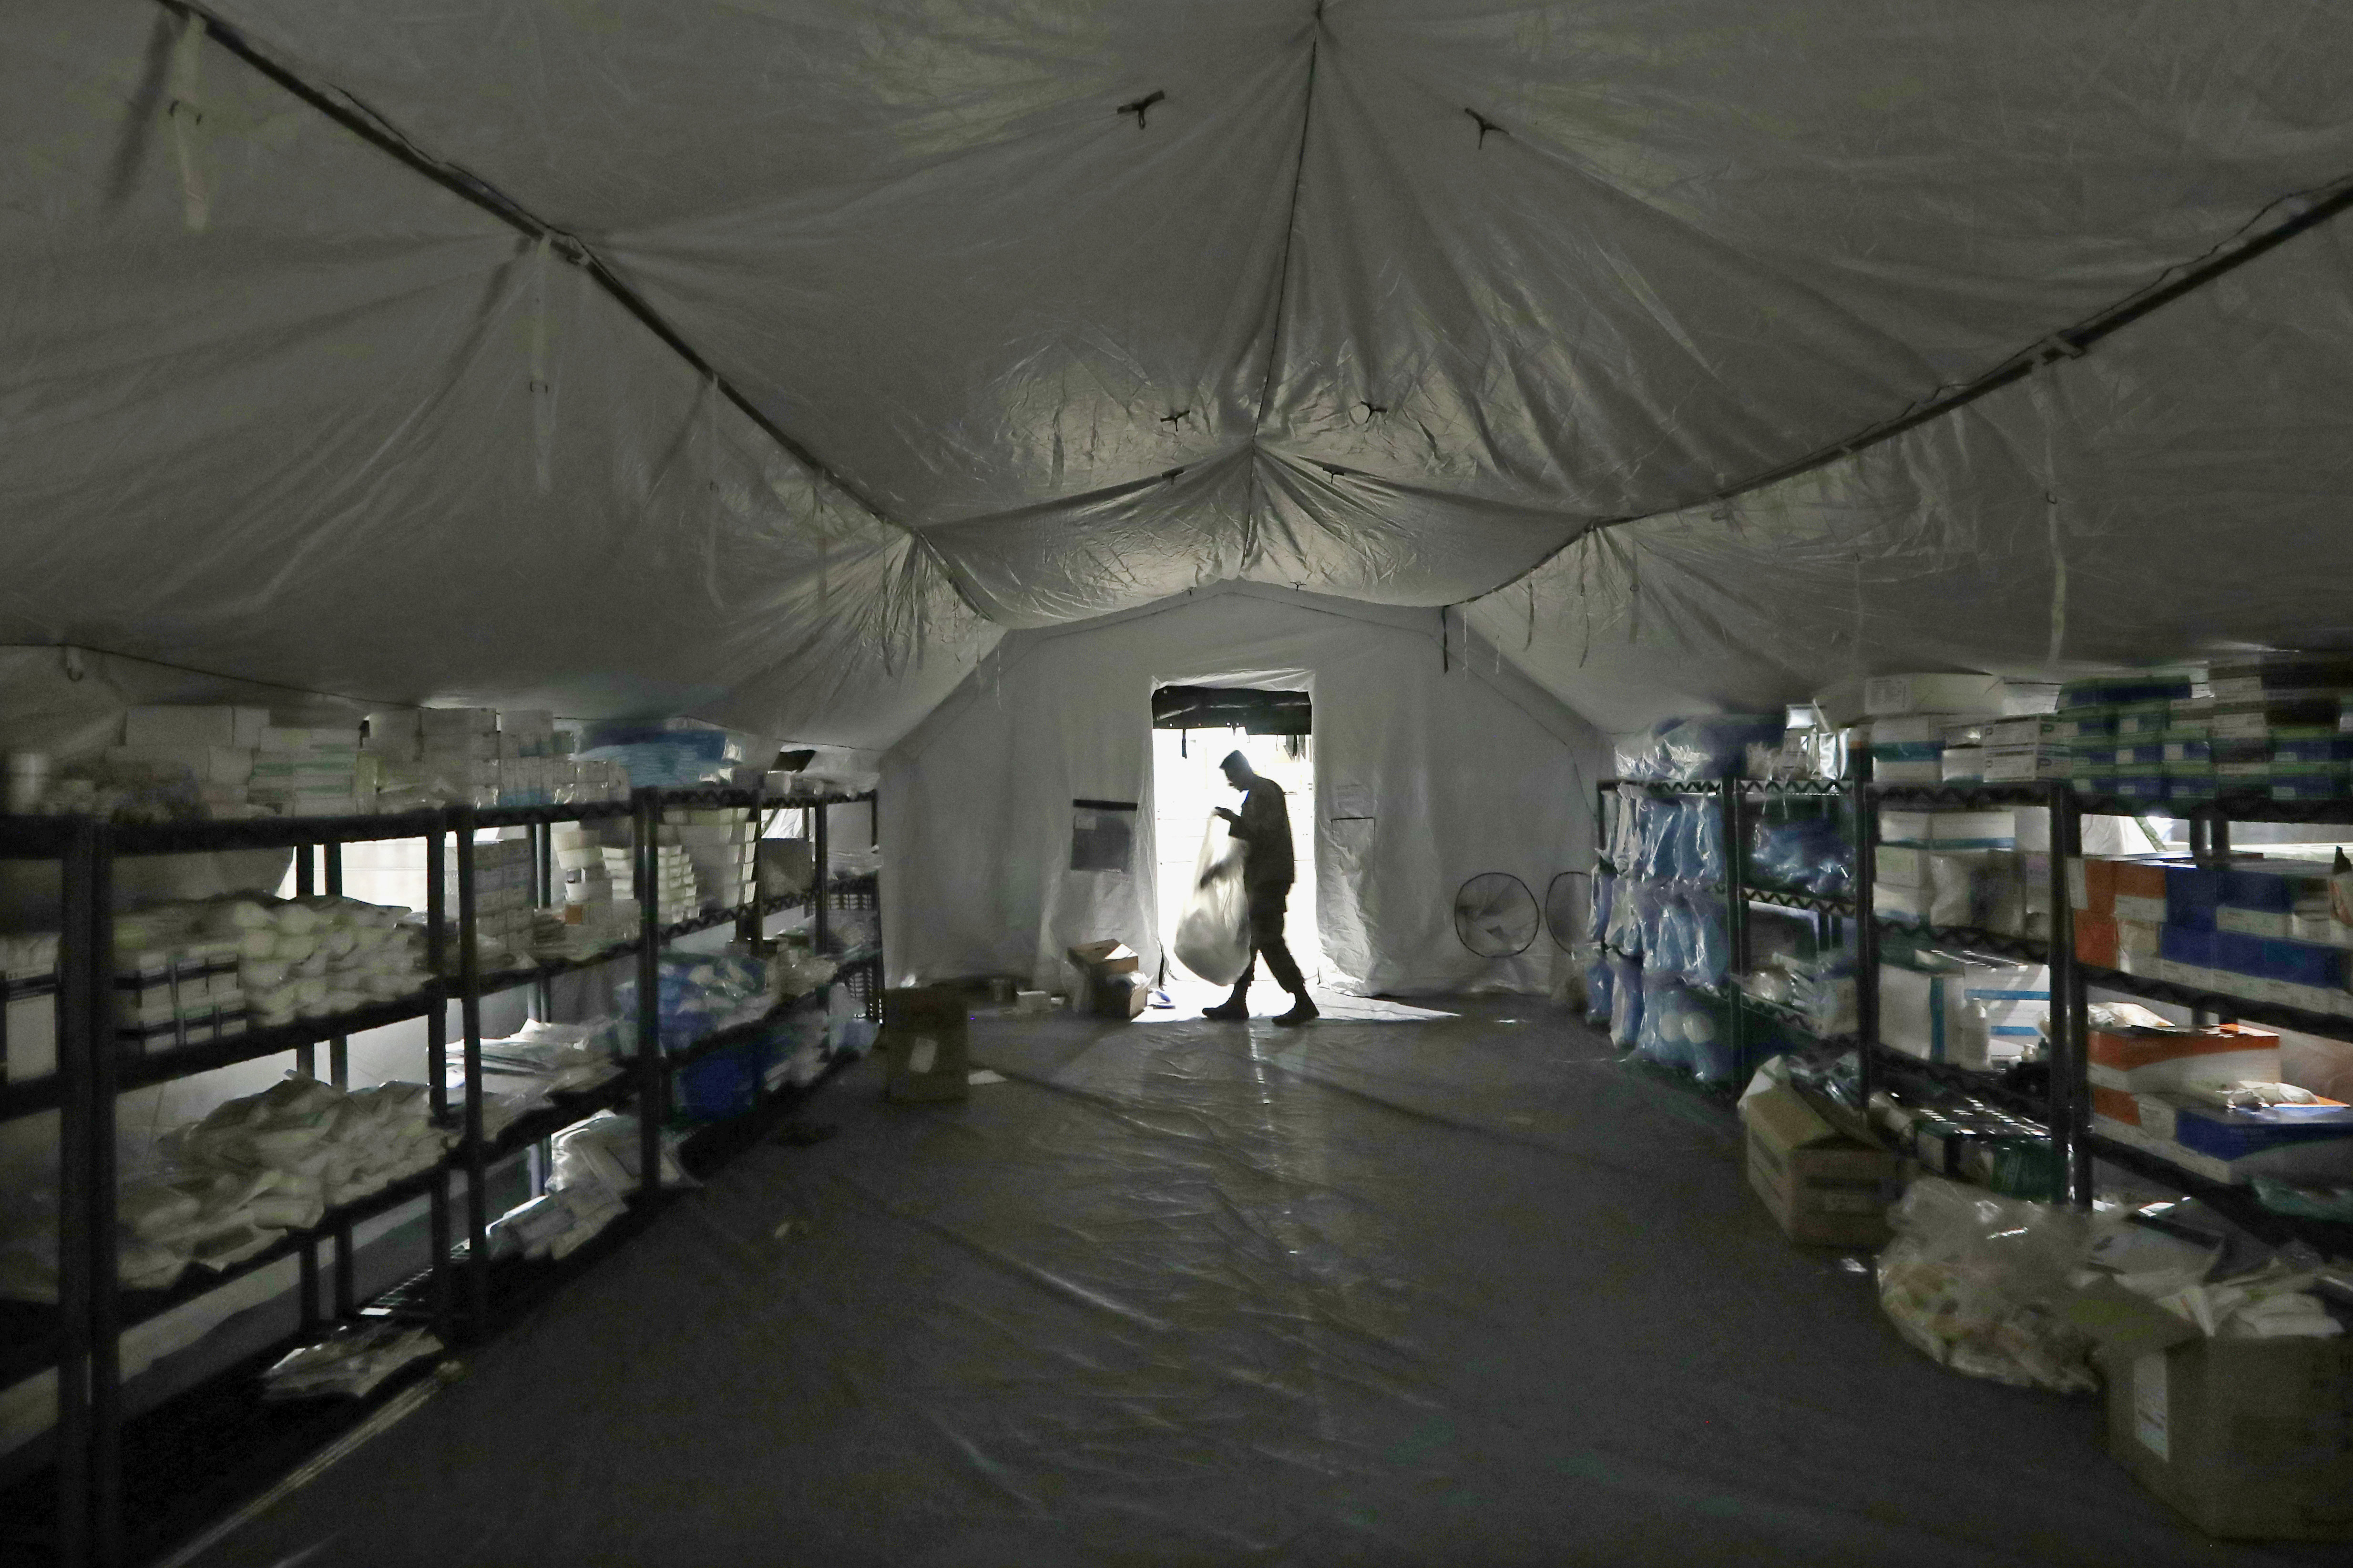 A U.S. Army soldier walks inside a mobile surgical unit being set up by soldiers from Fort Carson, Col., and Joint Base Lewis-McChord (JBLM) as part of a field hospital inside CenturyLink Field Event Center, in Seattle on March 31, 2020.